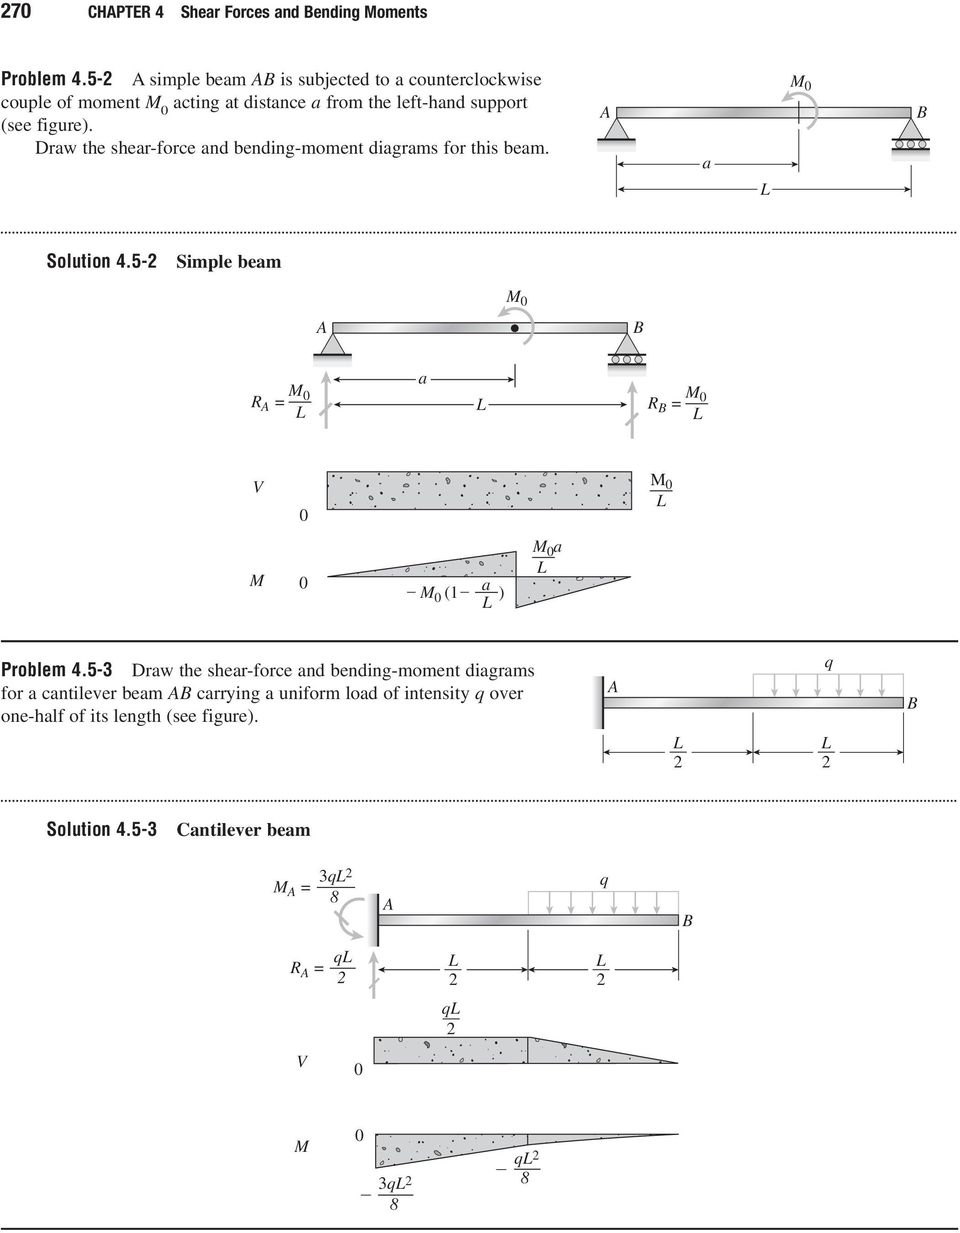 4 Shear Forces and Bending Moments - PDF